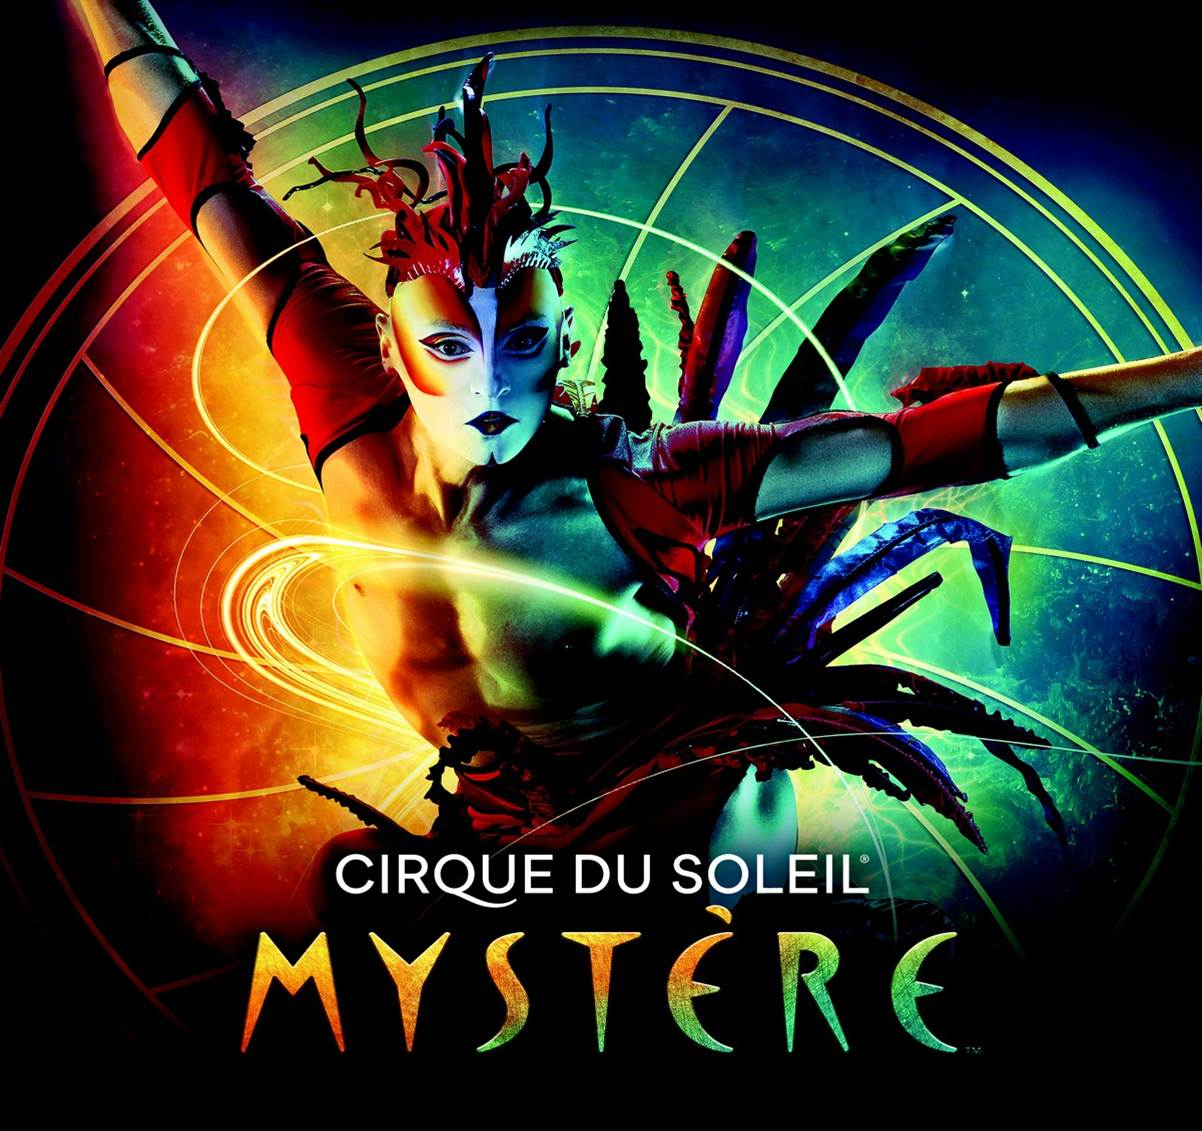 MYSTERE